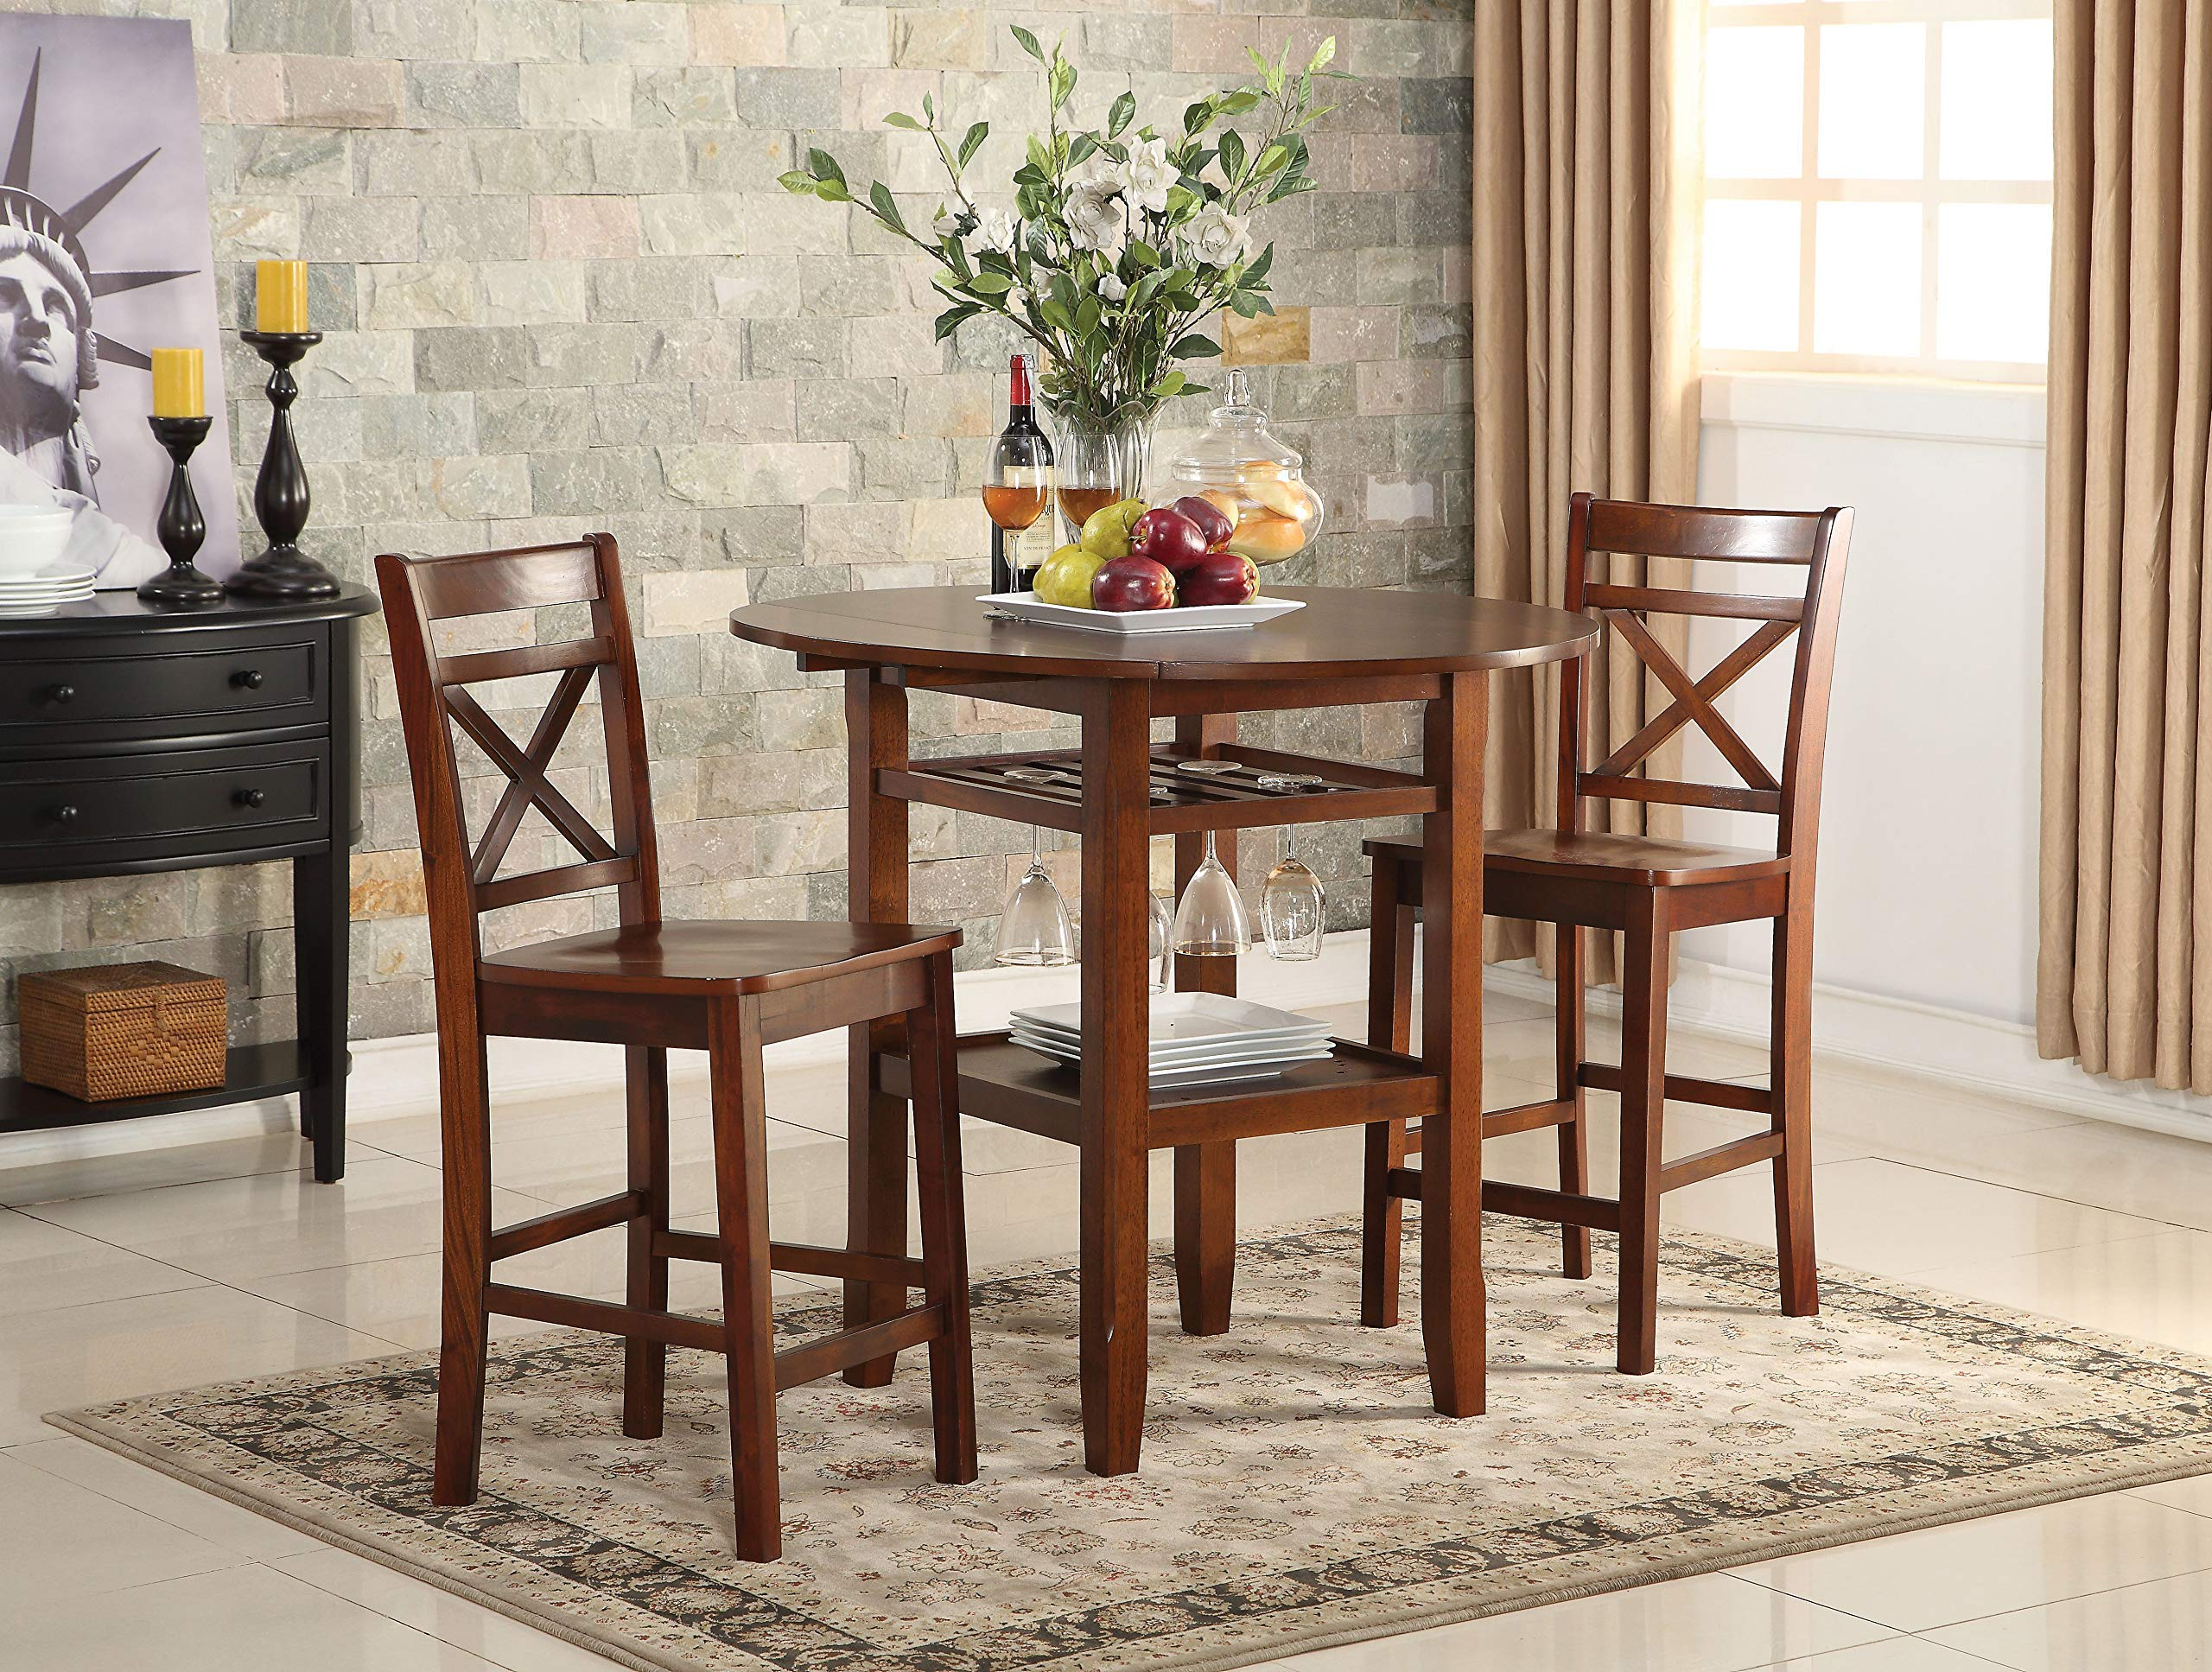 Acme Furniture 72535 Tartys Counter Height Table, Cherry